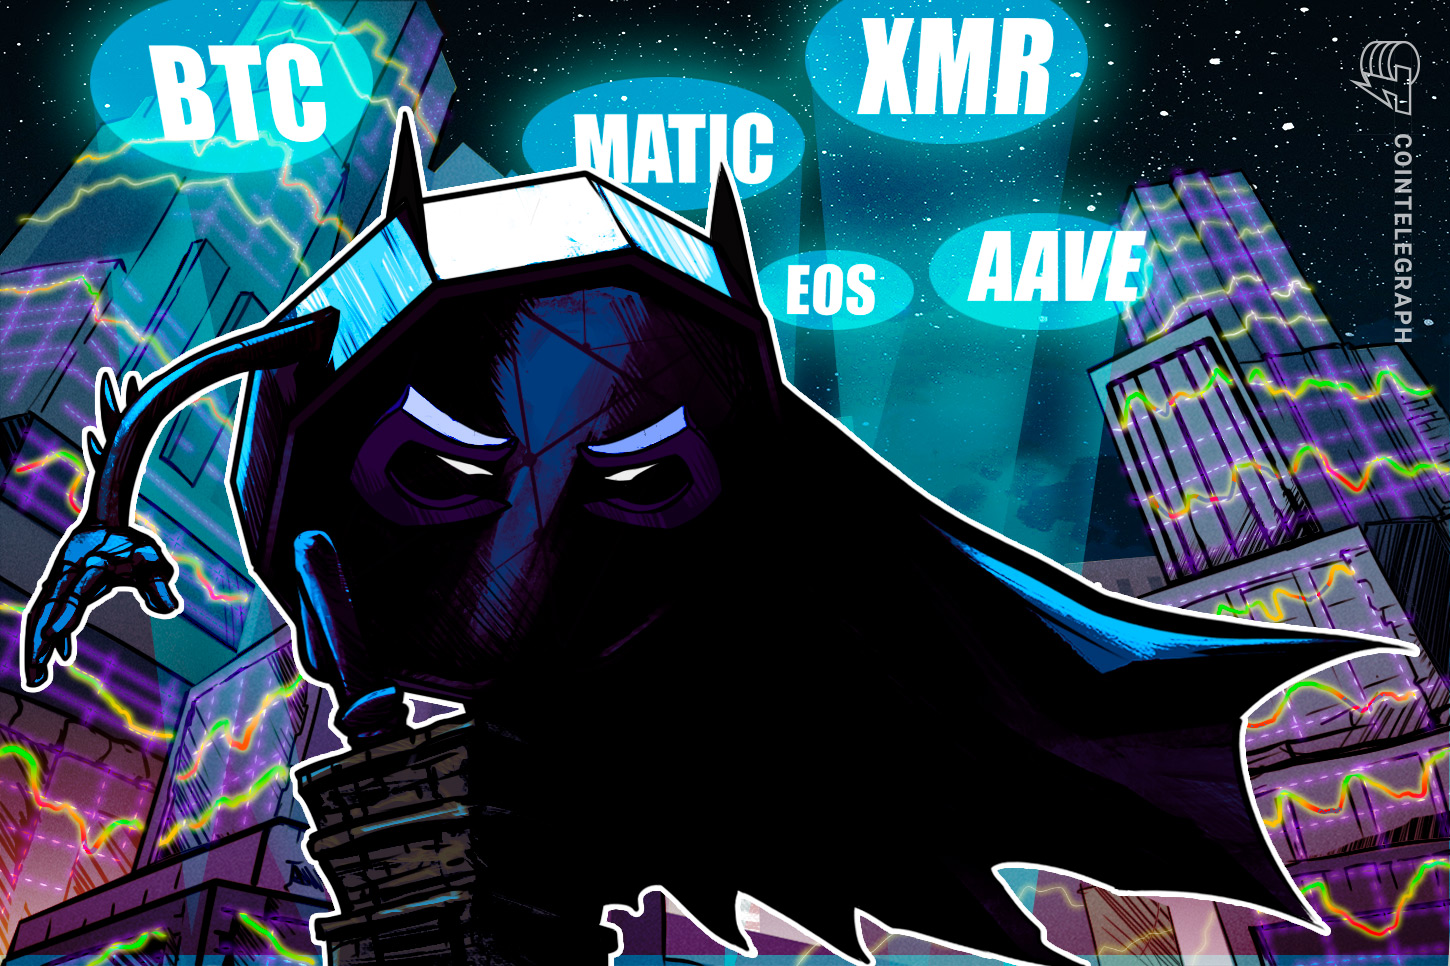 Top 5 cryptocurrencies to watch this week: BTC, MATIC, EOS, XMR, AAVE